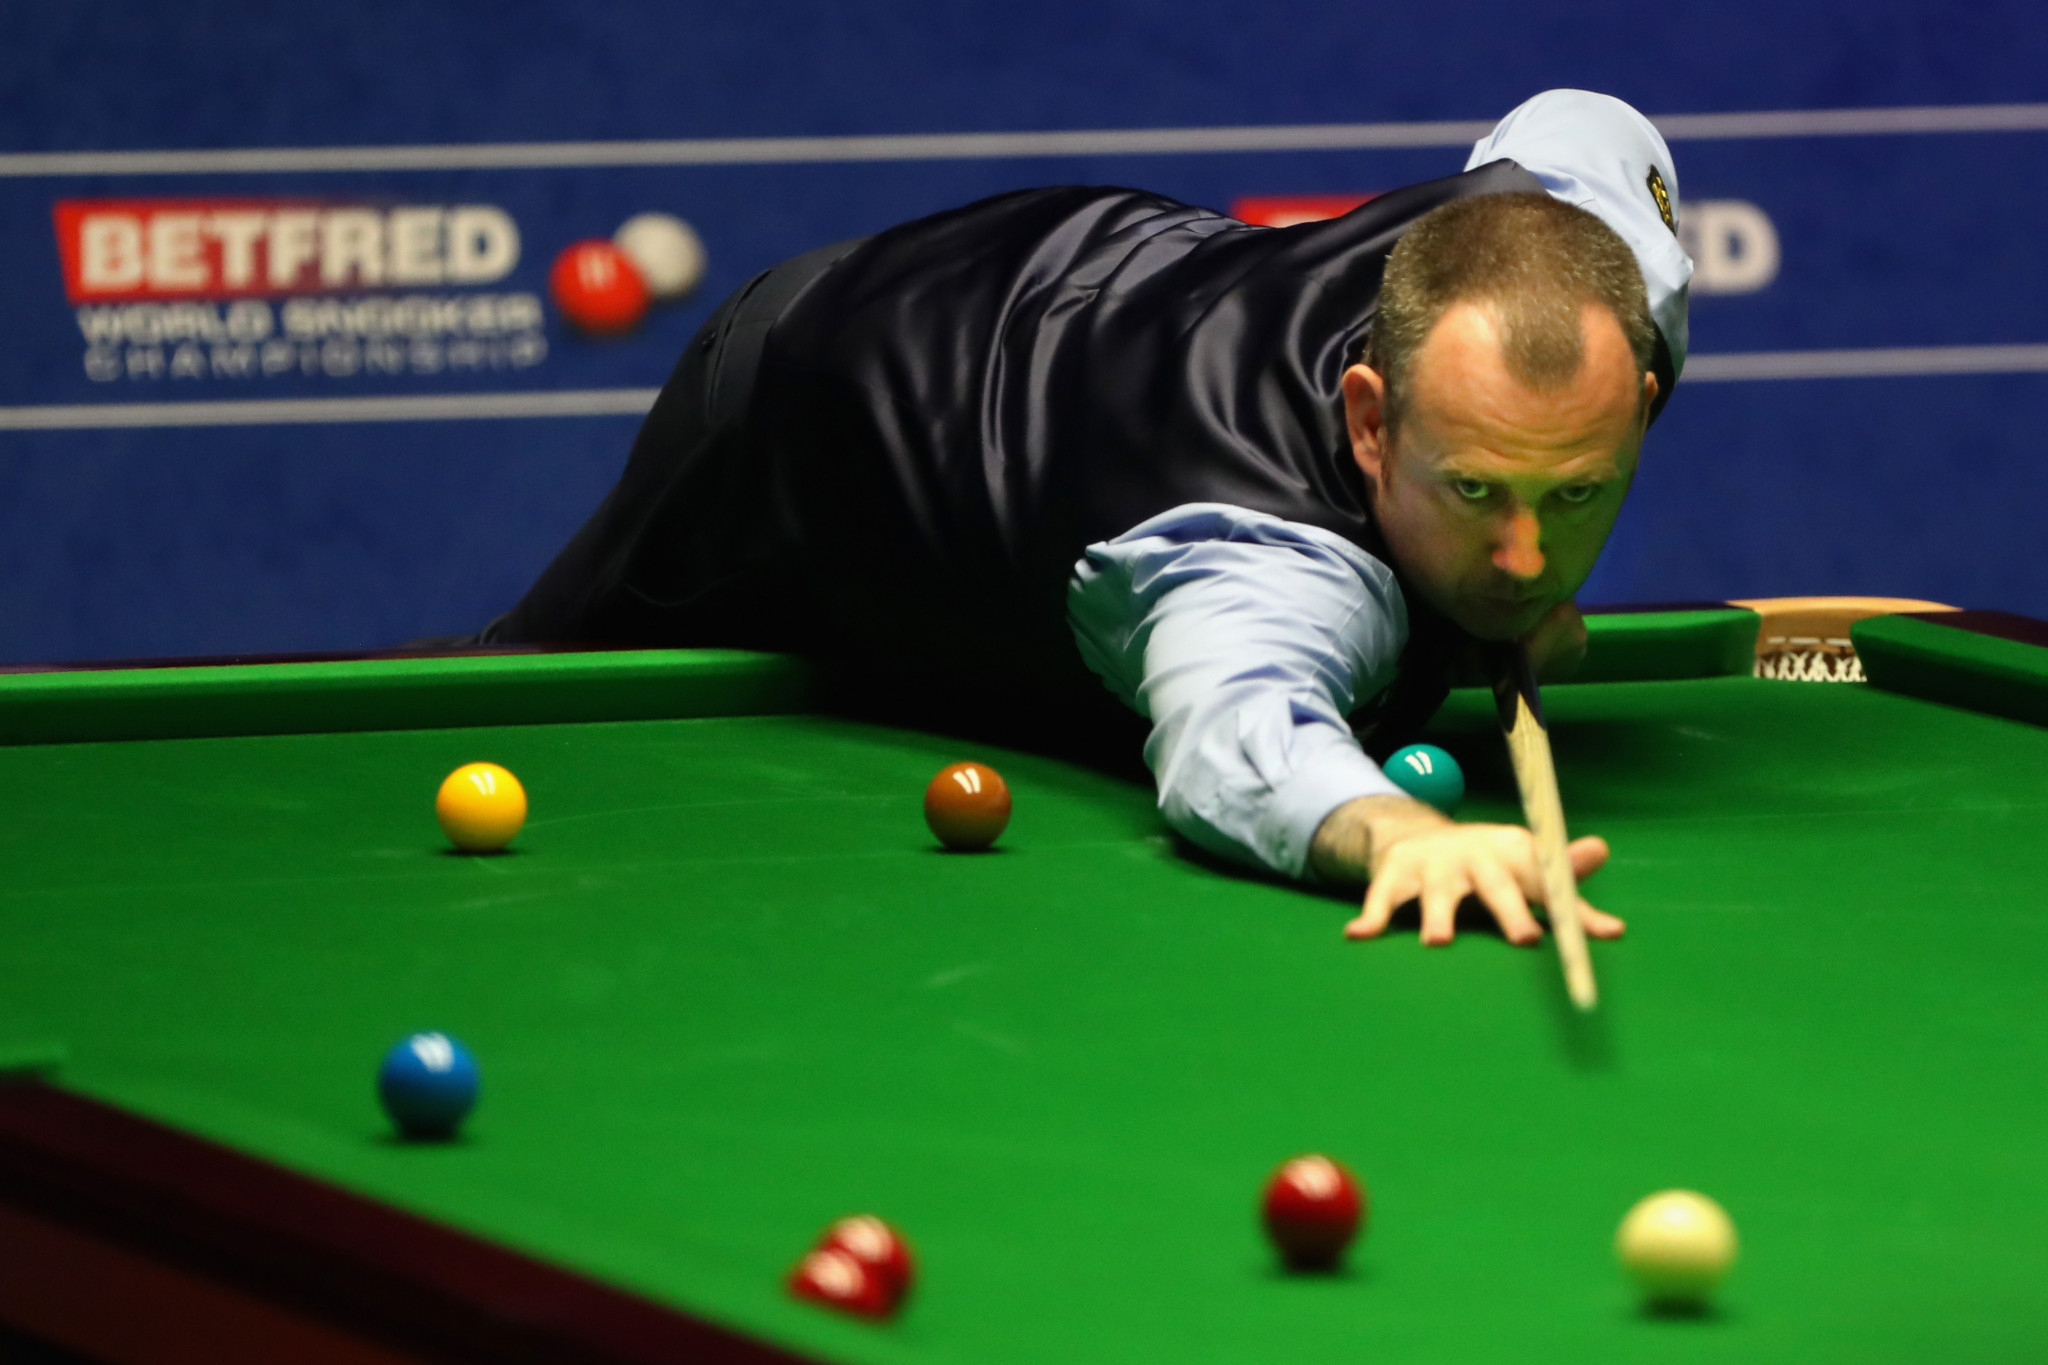 Mark Williams last won the world title in 2003 and failed to qualify for the 2017 tournament ©Getty Images